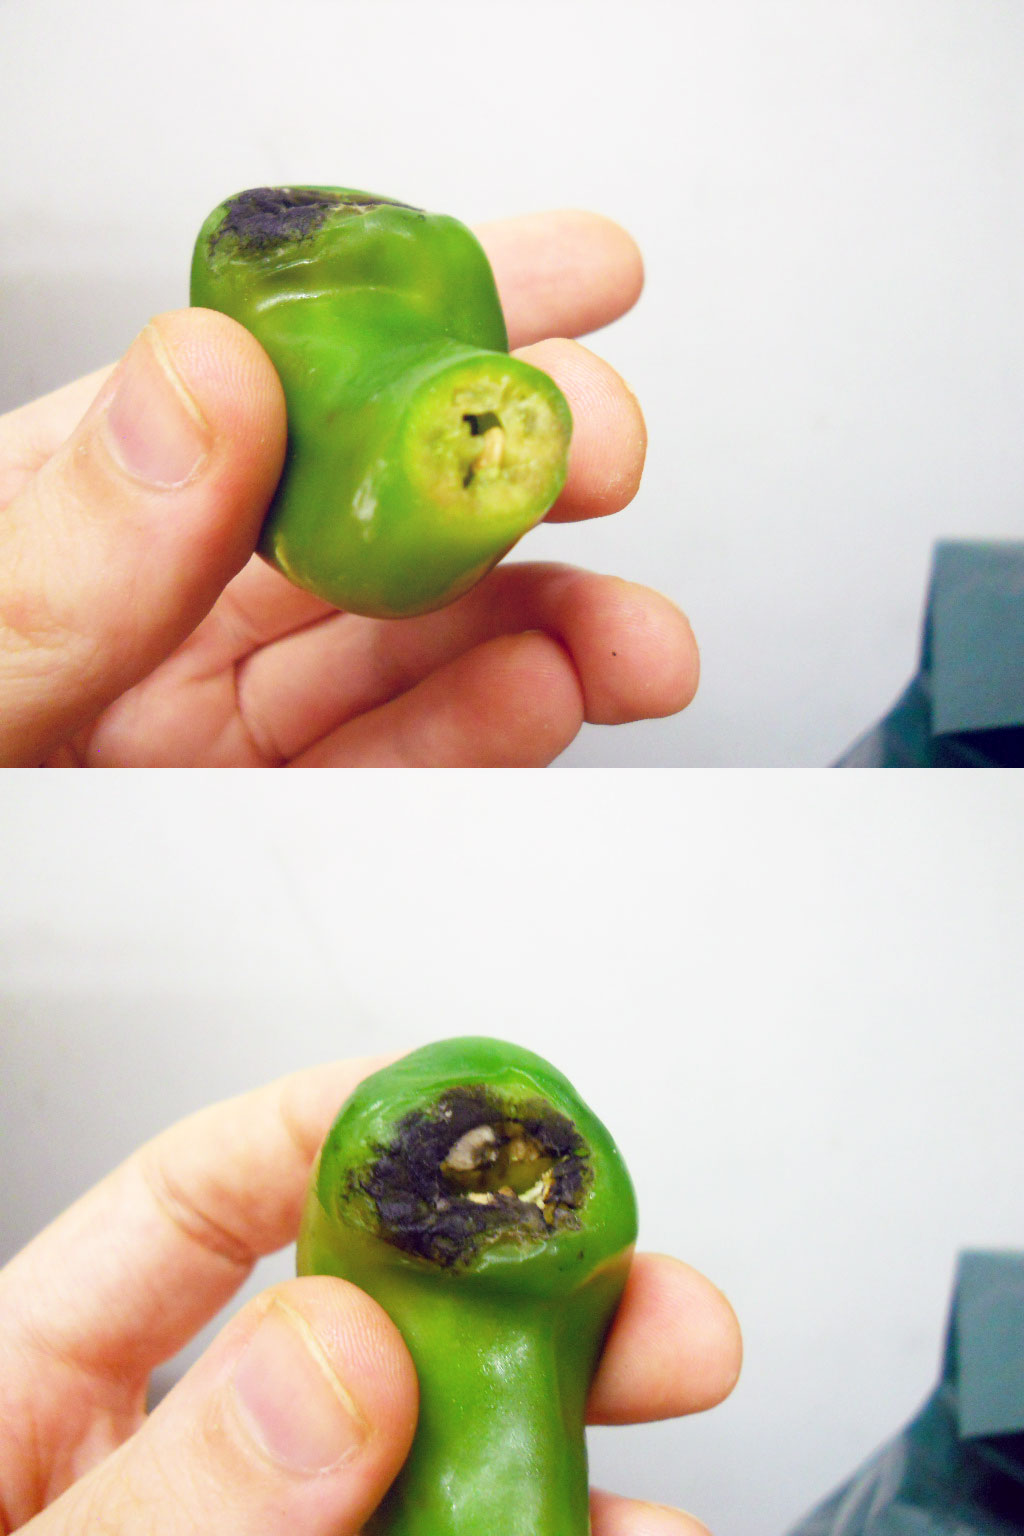 jalapeno_pipe_after